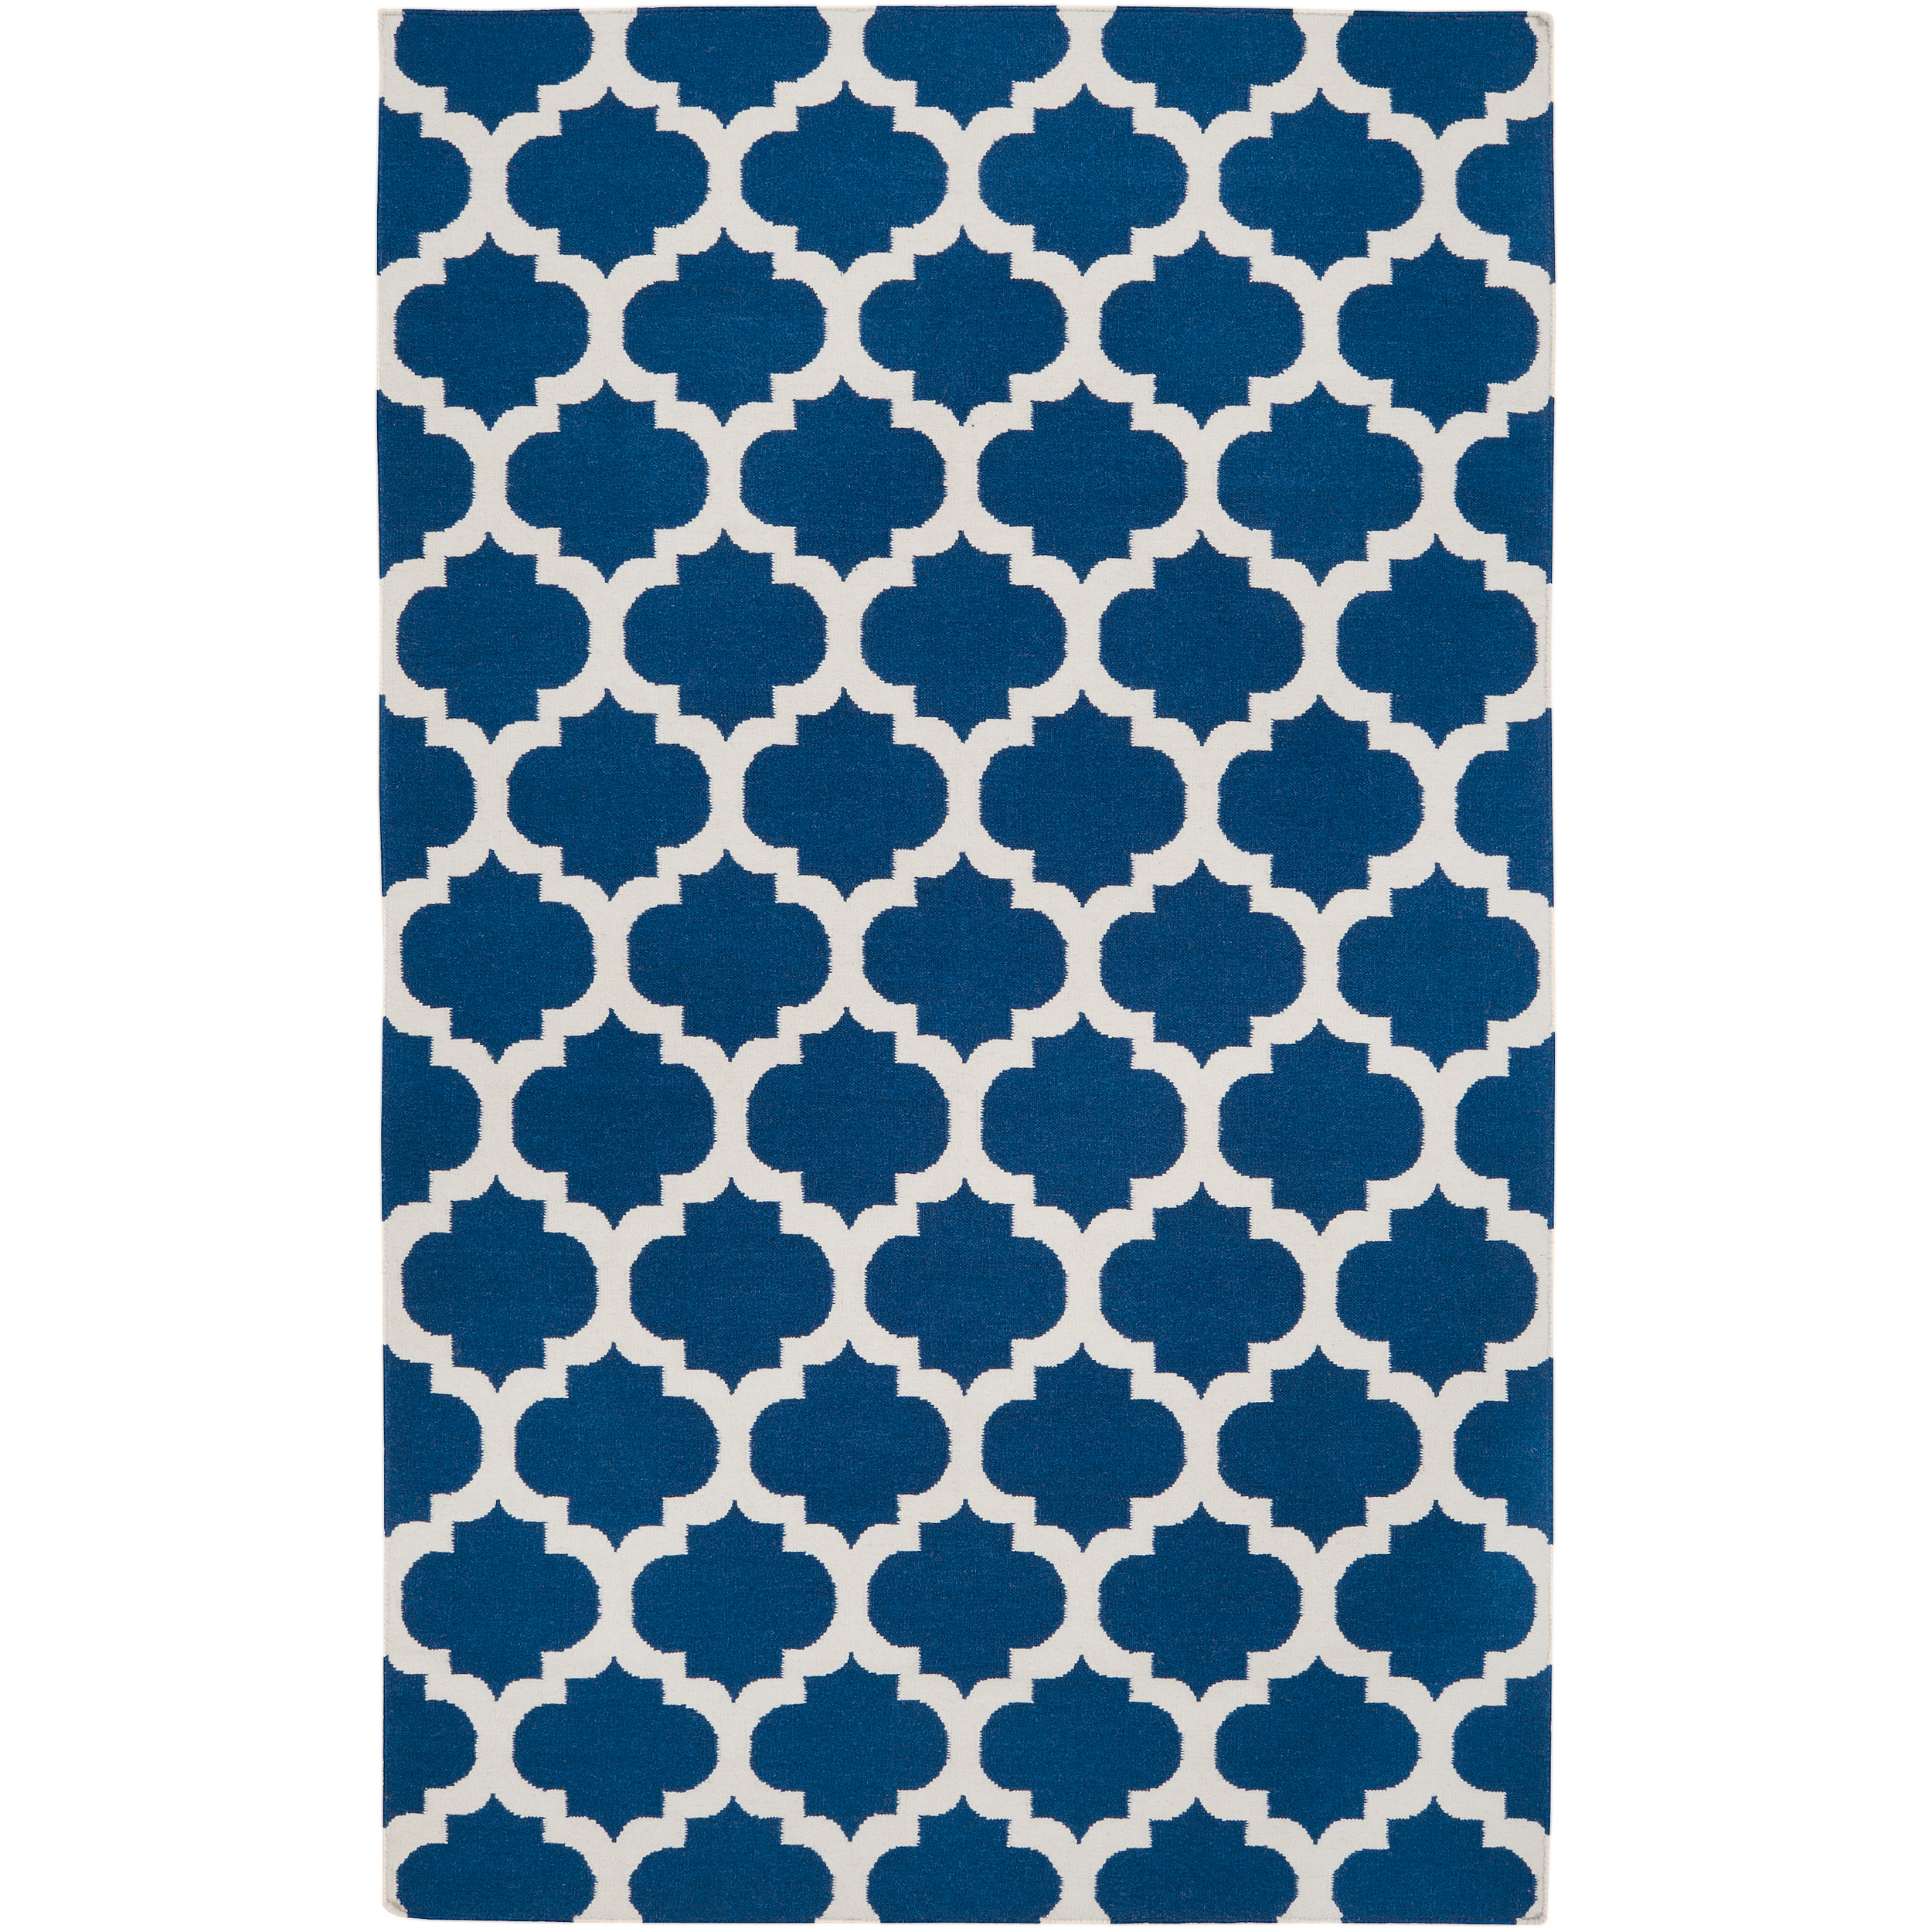 Remarkable Navy Blue and White Rug 2500 x 2500 · 5064 kB · jpeg